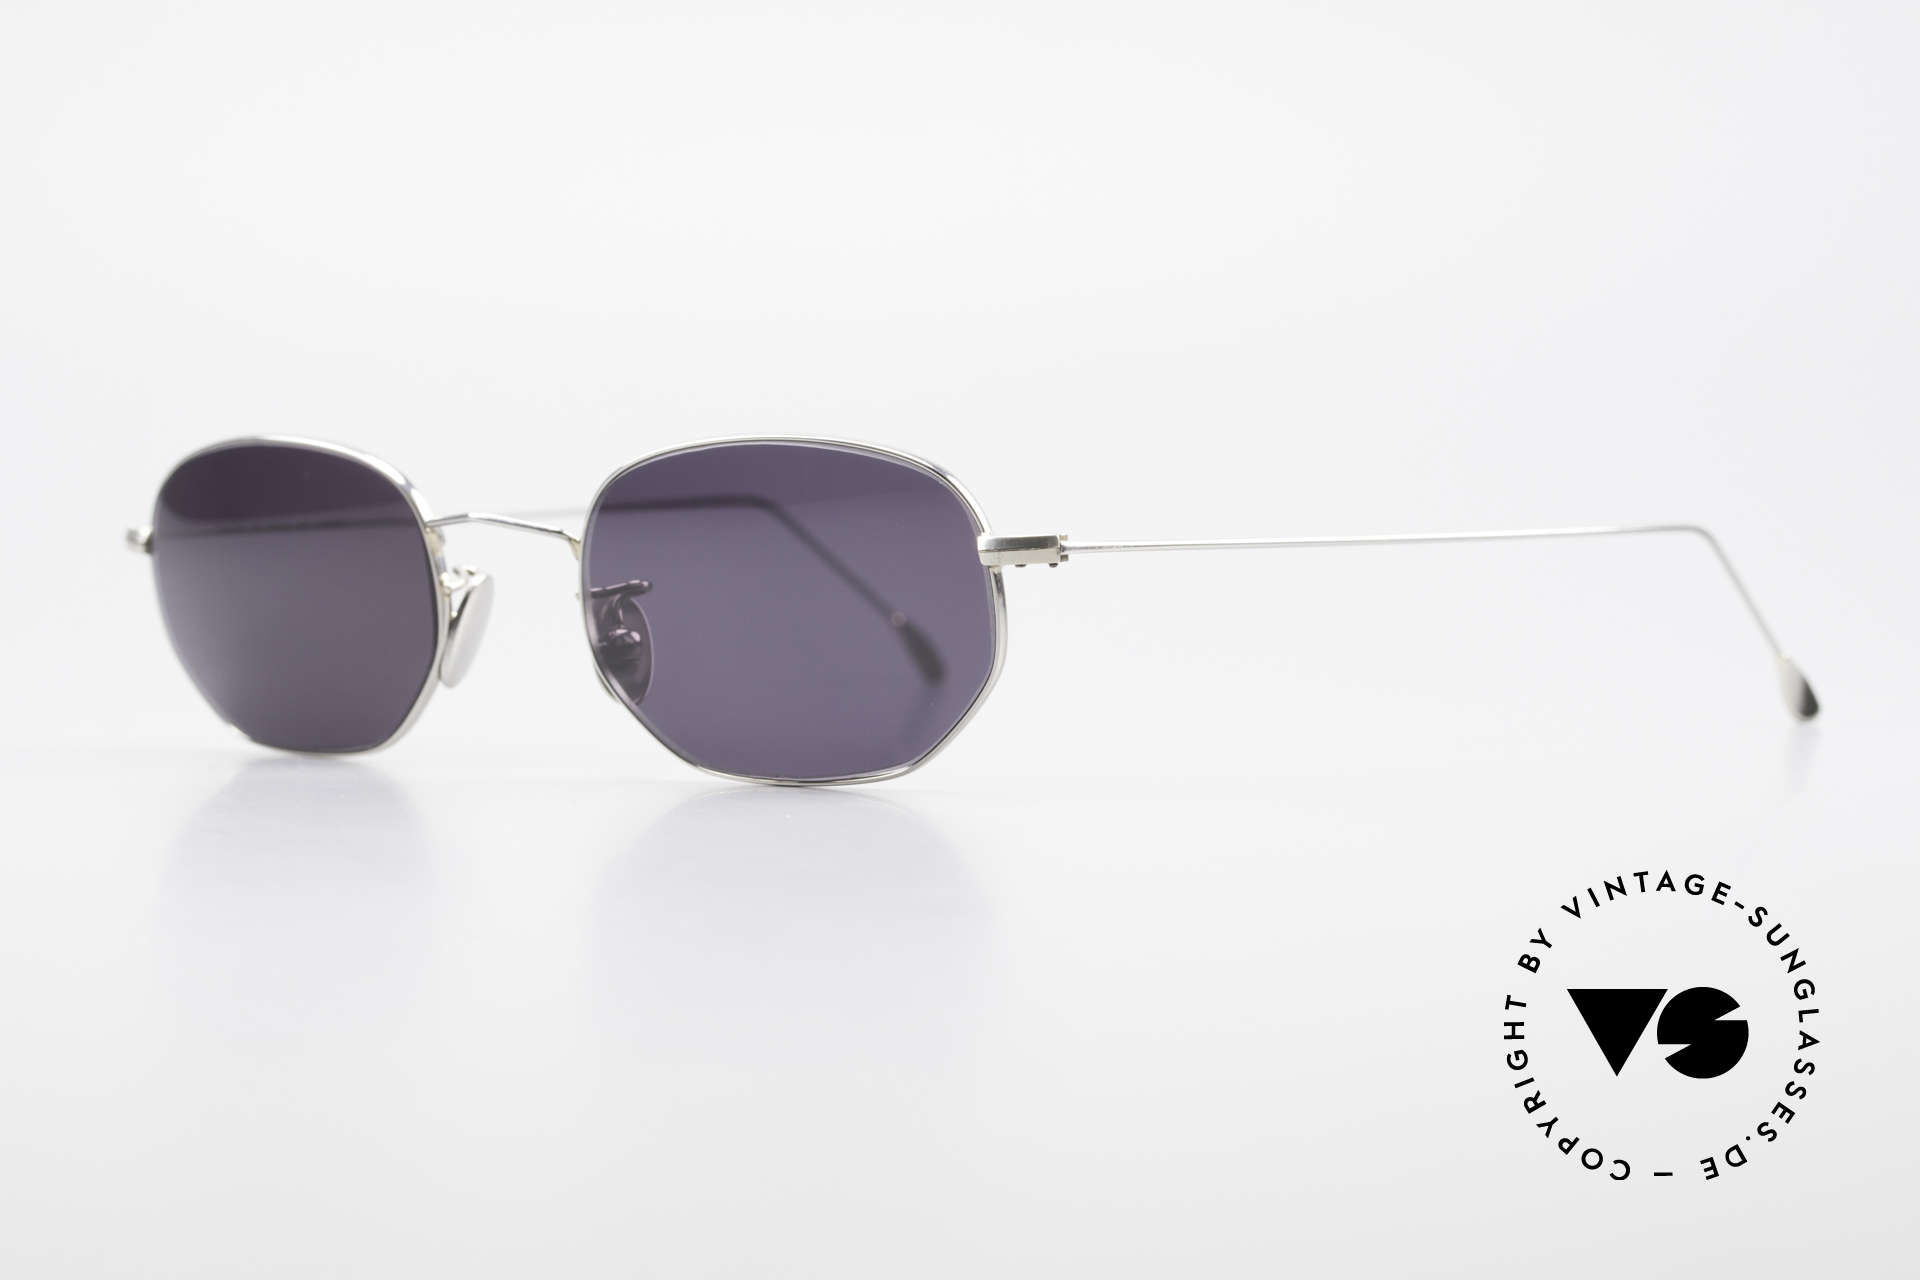 Cutler And Gross 0370 Classic Unisex Sunglasses 90s, stylish & distinctive in absence of an ostentatious logo, Made for Men and Women